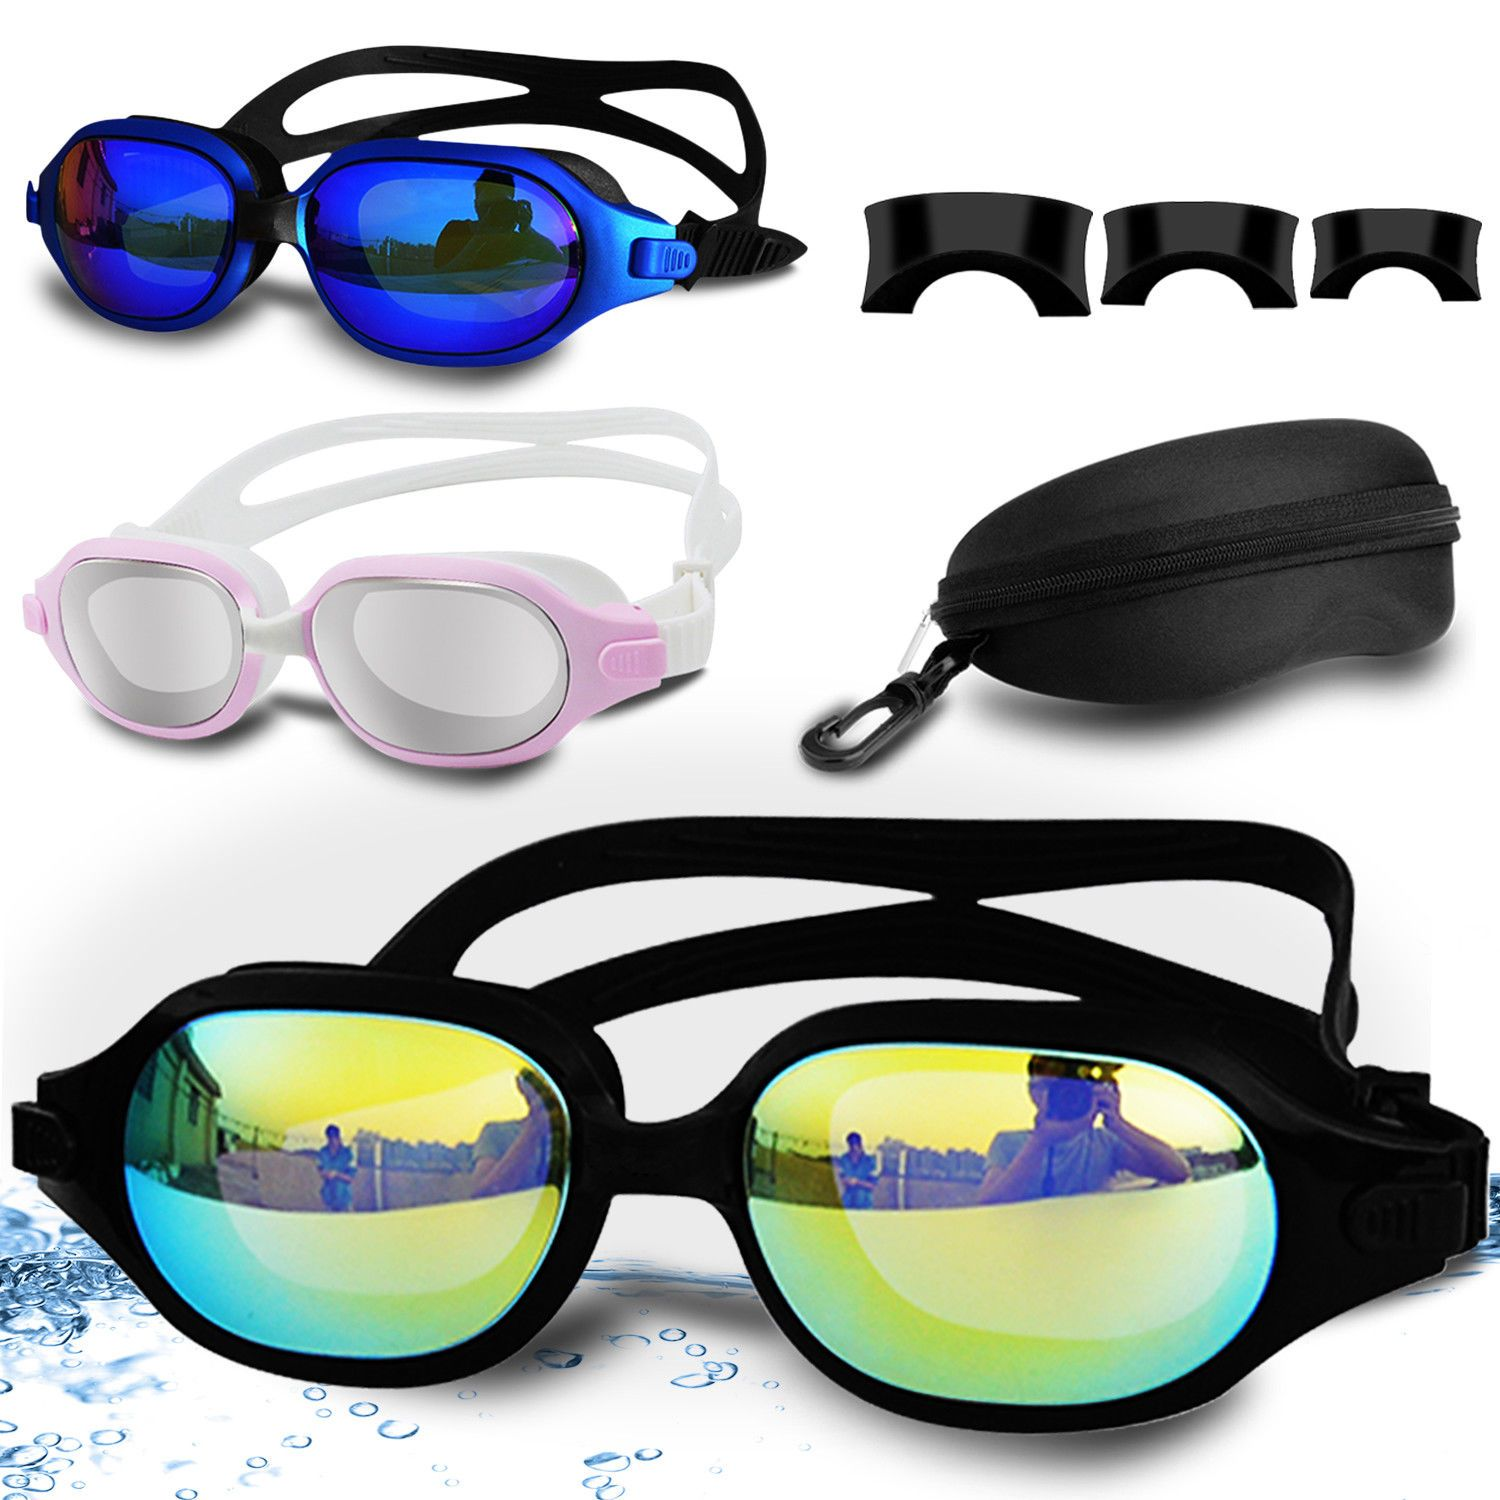 80553258f378 Swimming Goggles Anti Fog UV Protection Adult Clear Swim Glasses Adjustable  Mask